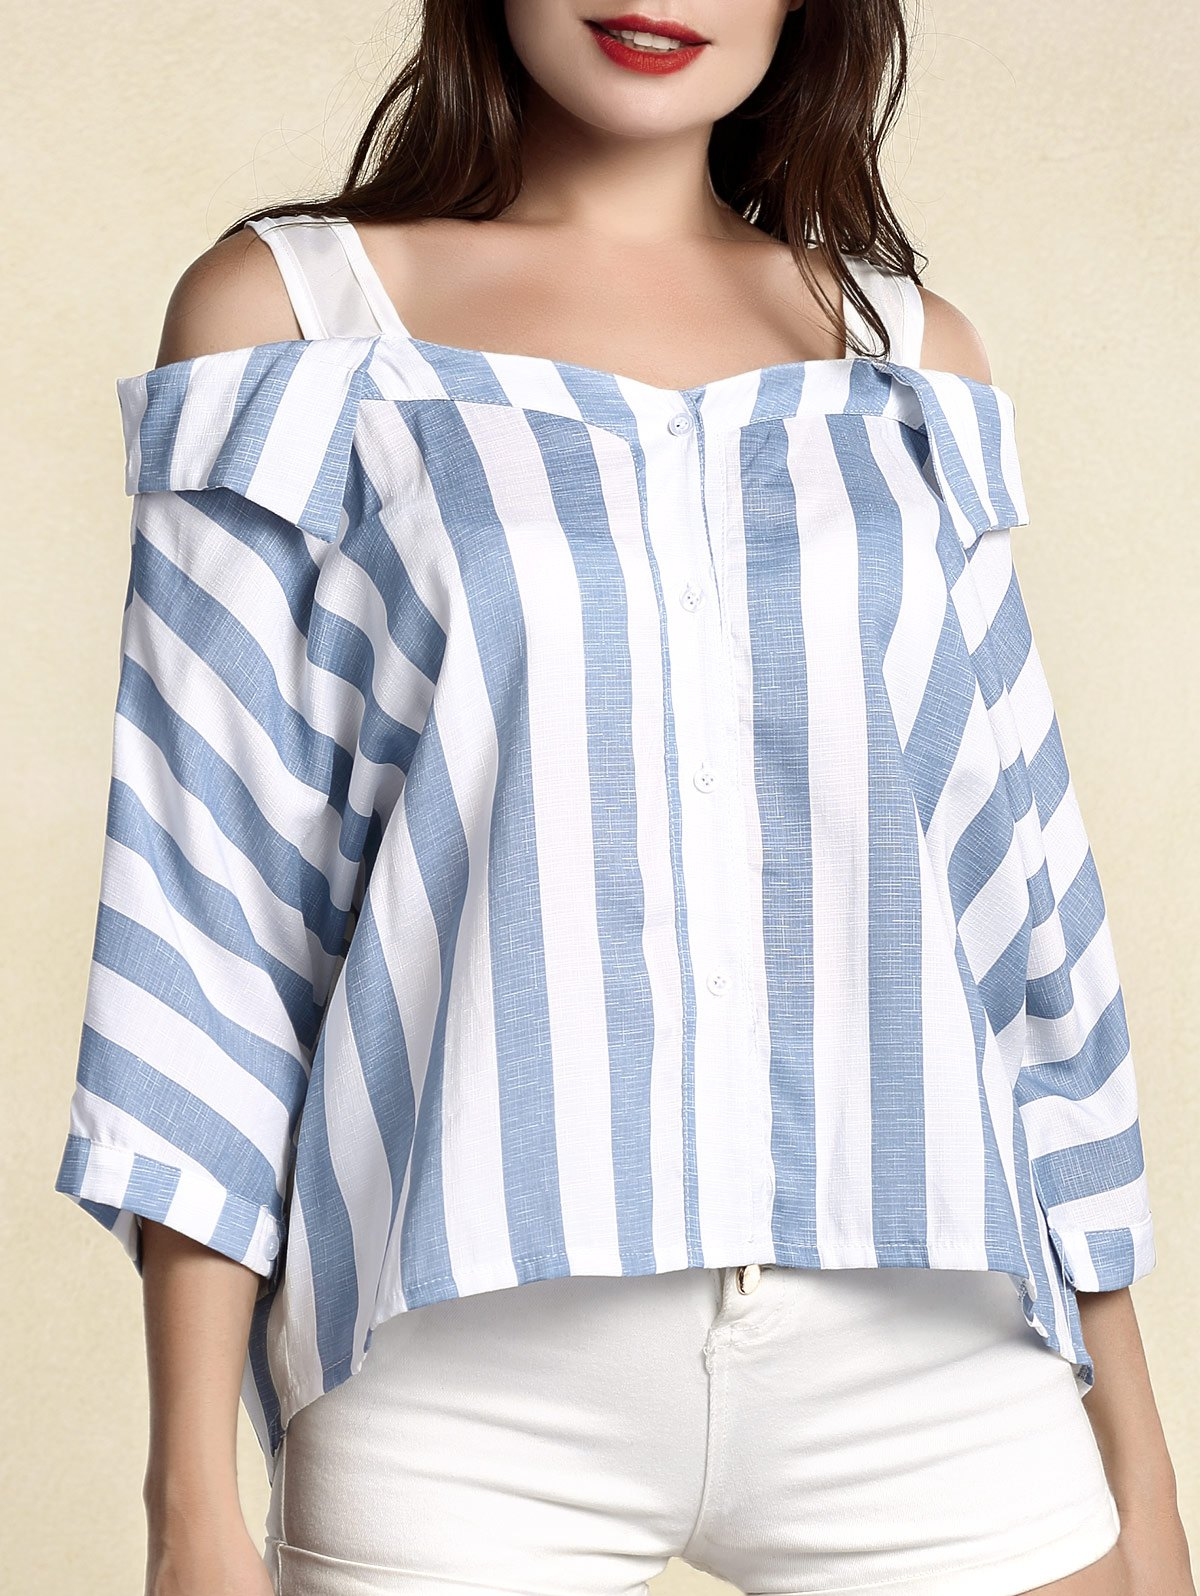 Chic Women's Striped 3/4 Sleeve Cut Out Blouse - BLUE XL